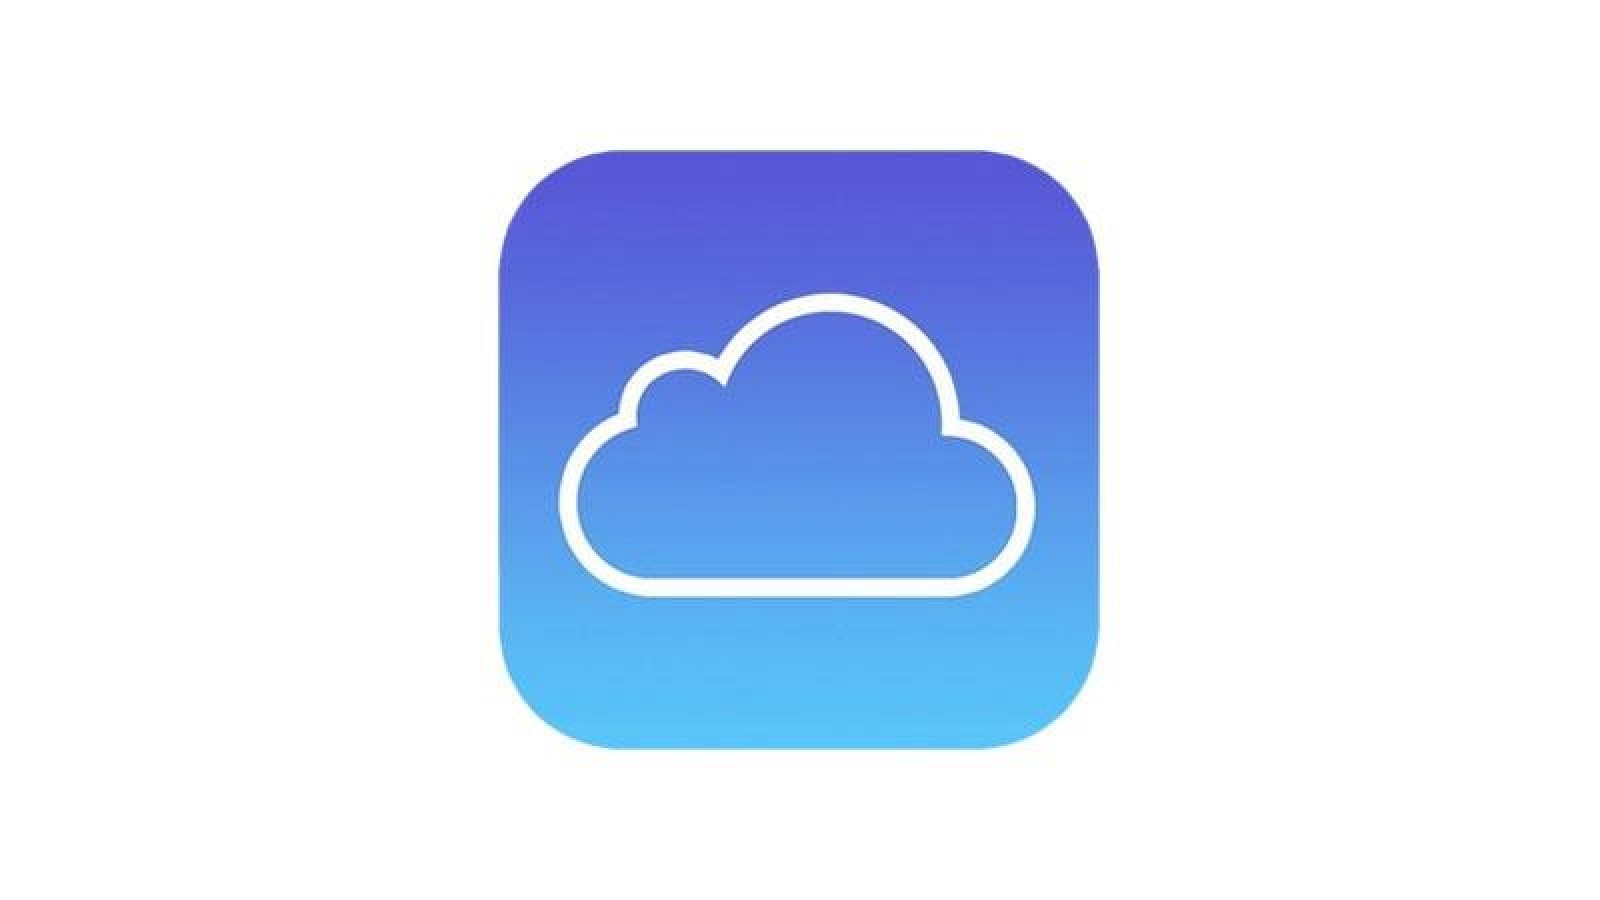 Some iCloud Storage Plans Unavailable to Purchase Today, Likely Due